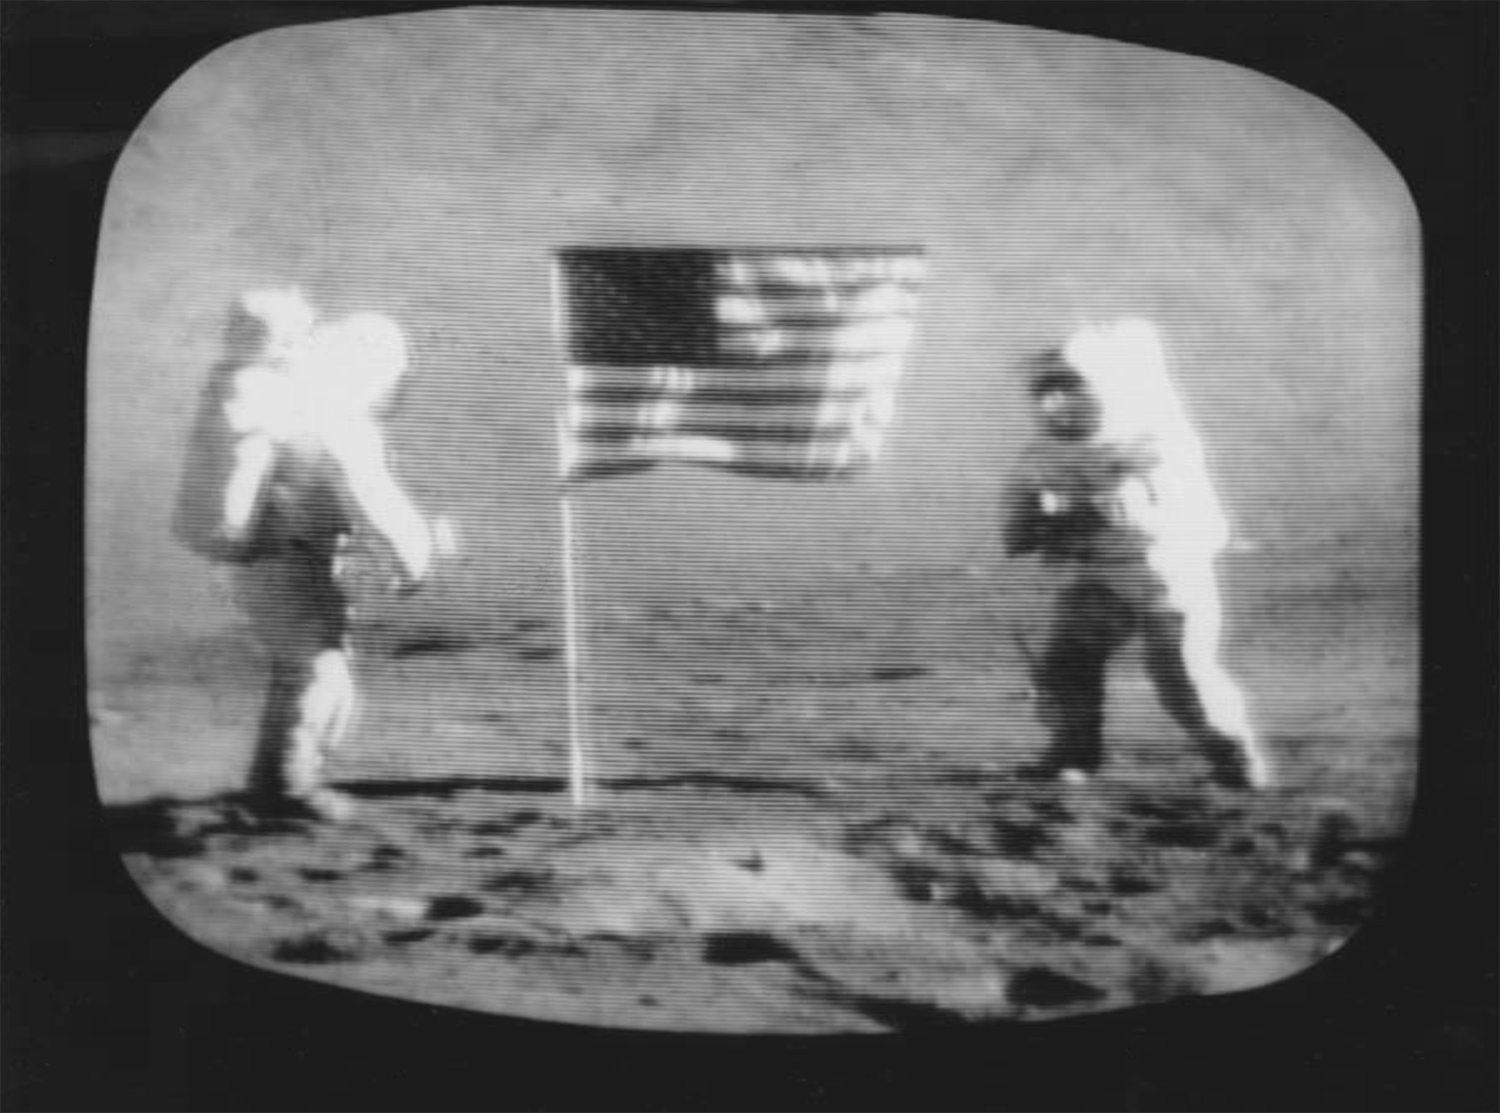 Associated Wire Press Photo (USA), After unfurling the American flag, the astronauts photographed each other. Cernan (right) got set to snap a picture of Schmitt. 12 December 1972. Collection of Geoffrey Batchen, Wellington.